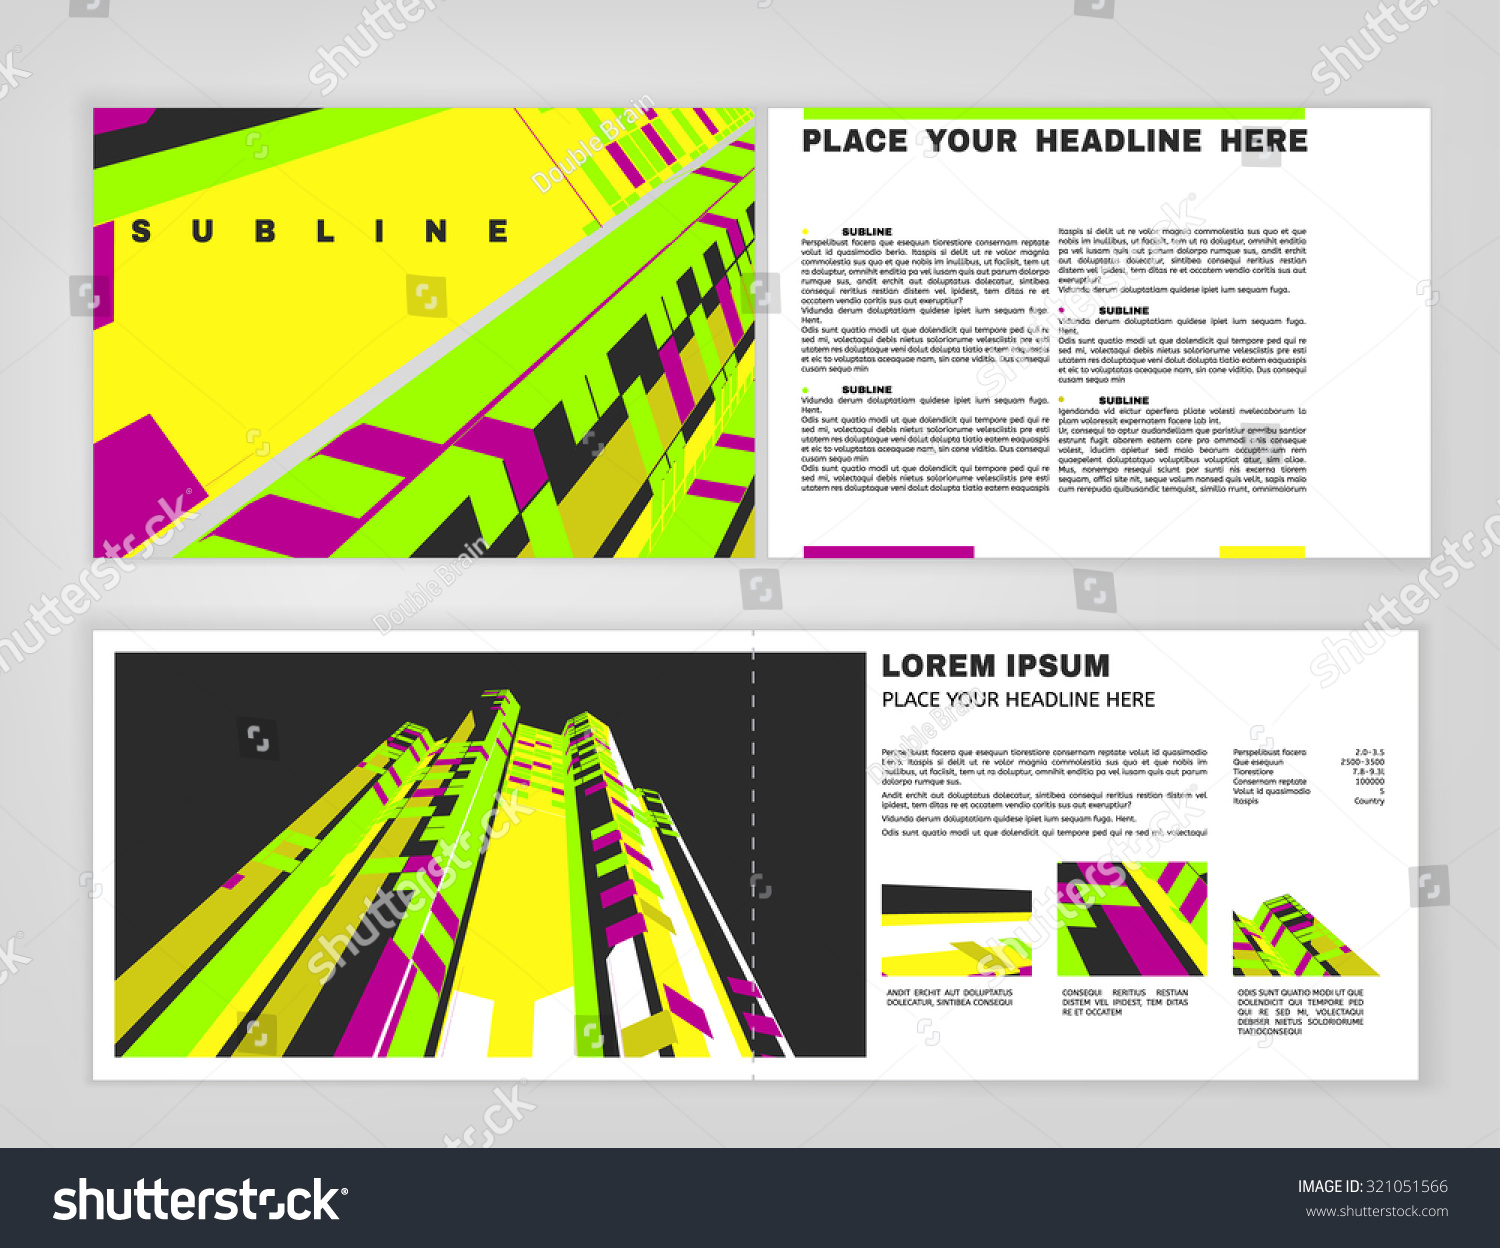 Vector Business Brochure Template. Bright Modern Backgrounds For Poster,  Print, Flyer, Book